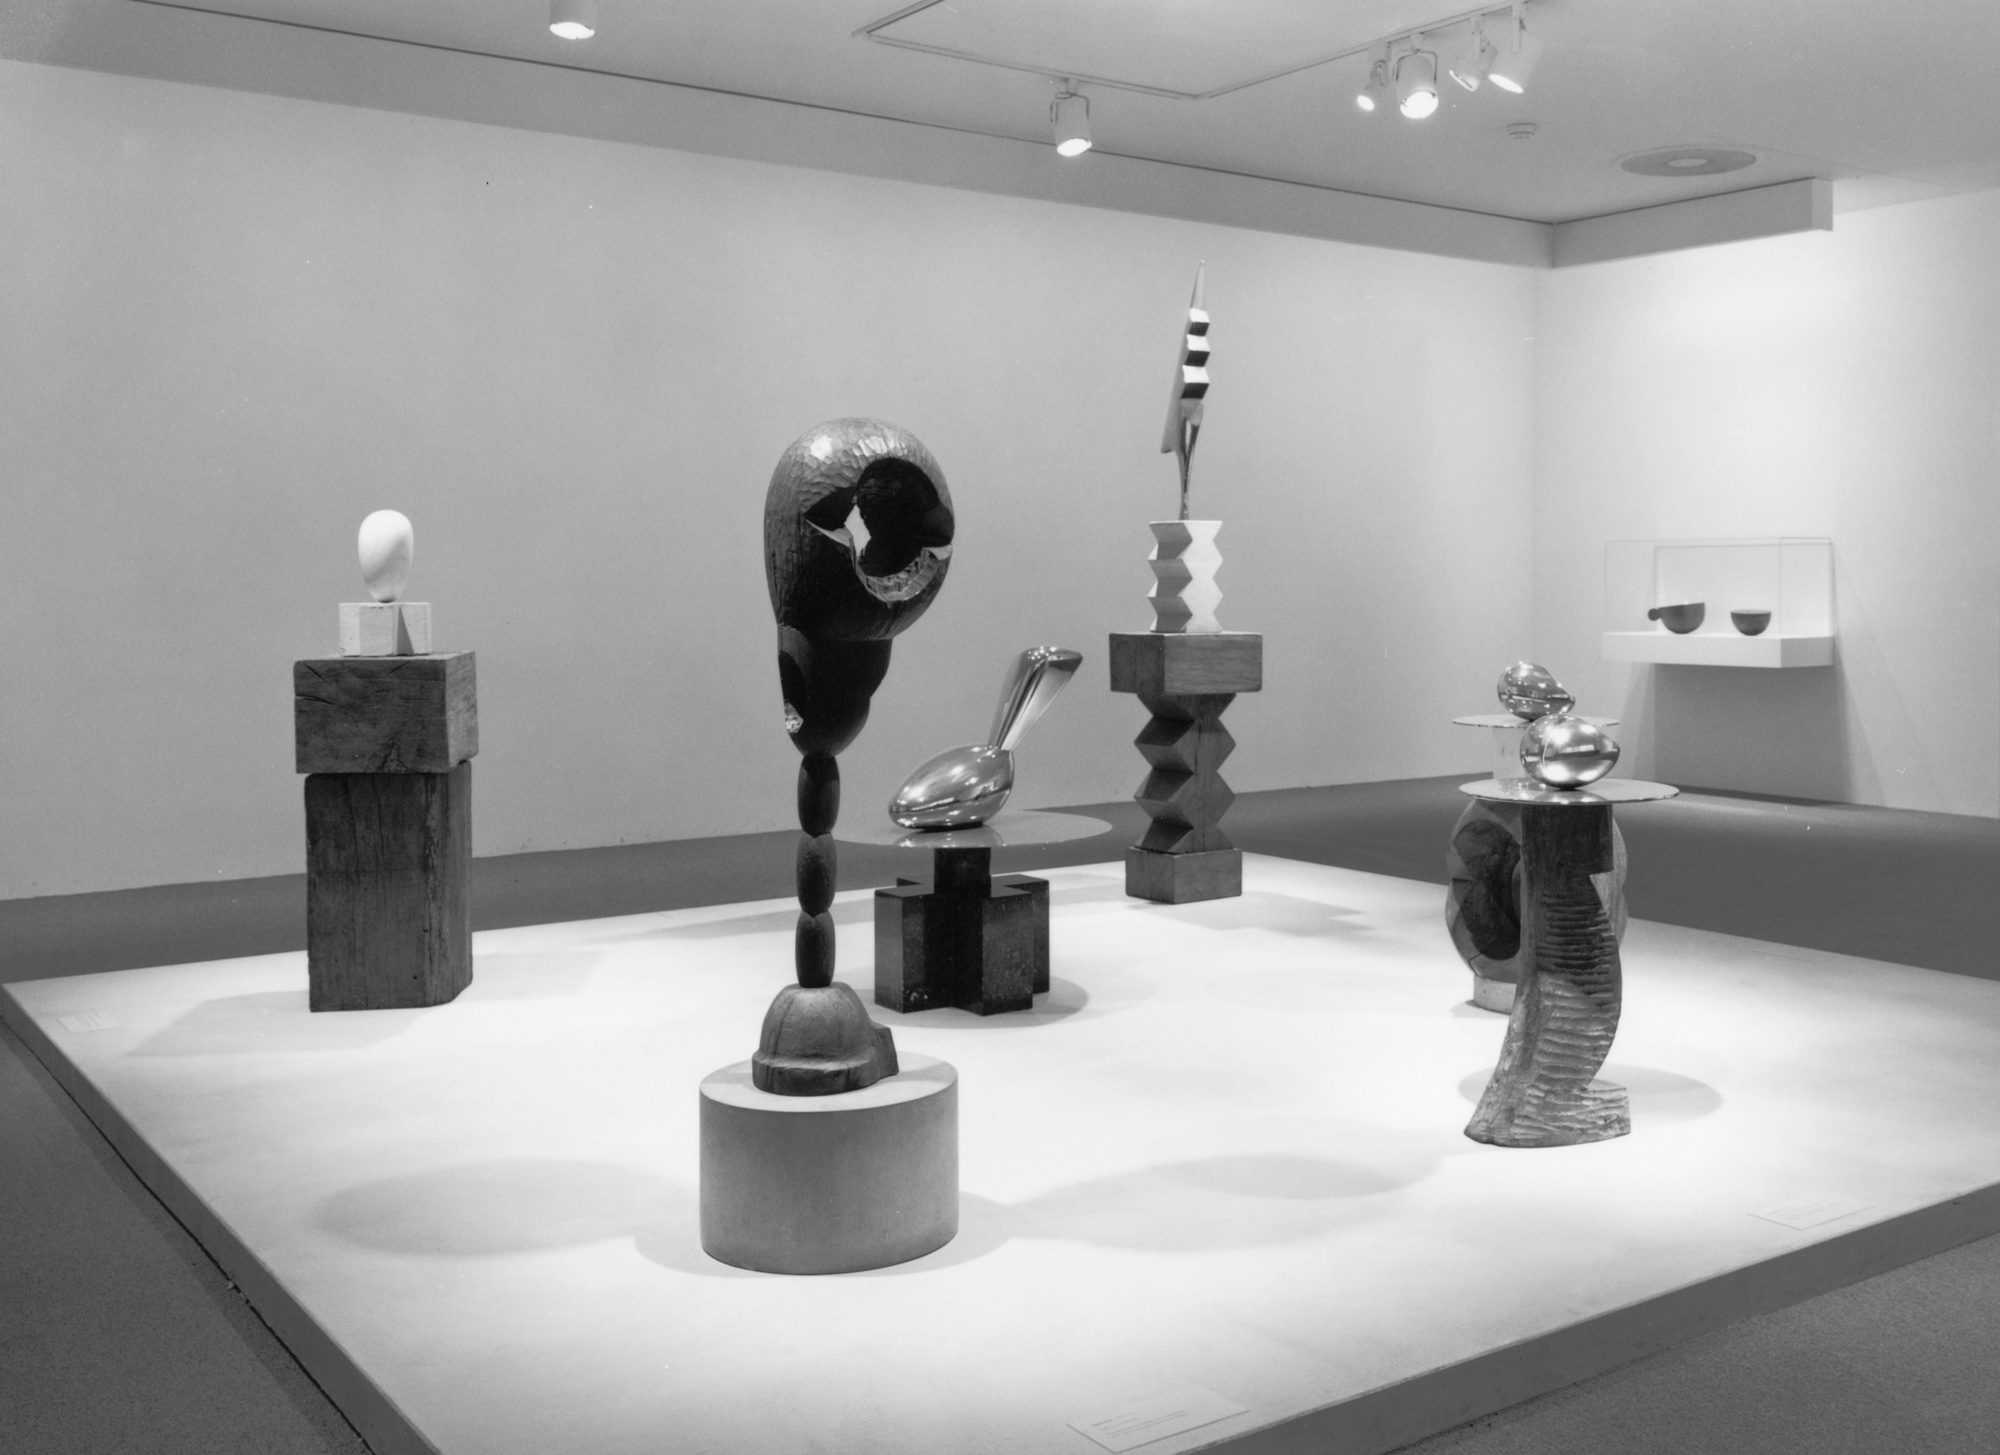 Brancusi AR @ MoMA - Can we expand the life of artworks through deeper engagement and contextual understanding?